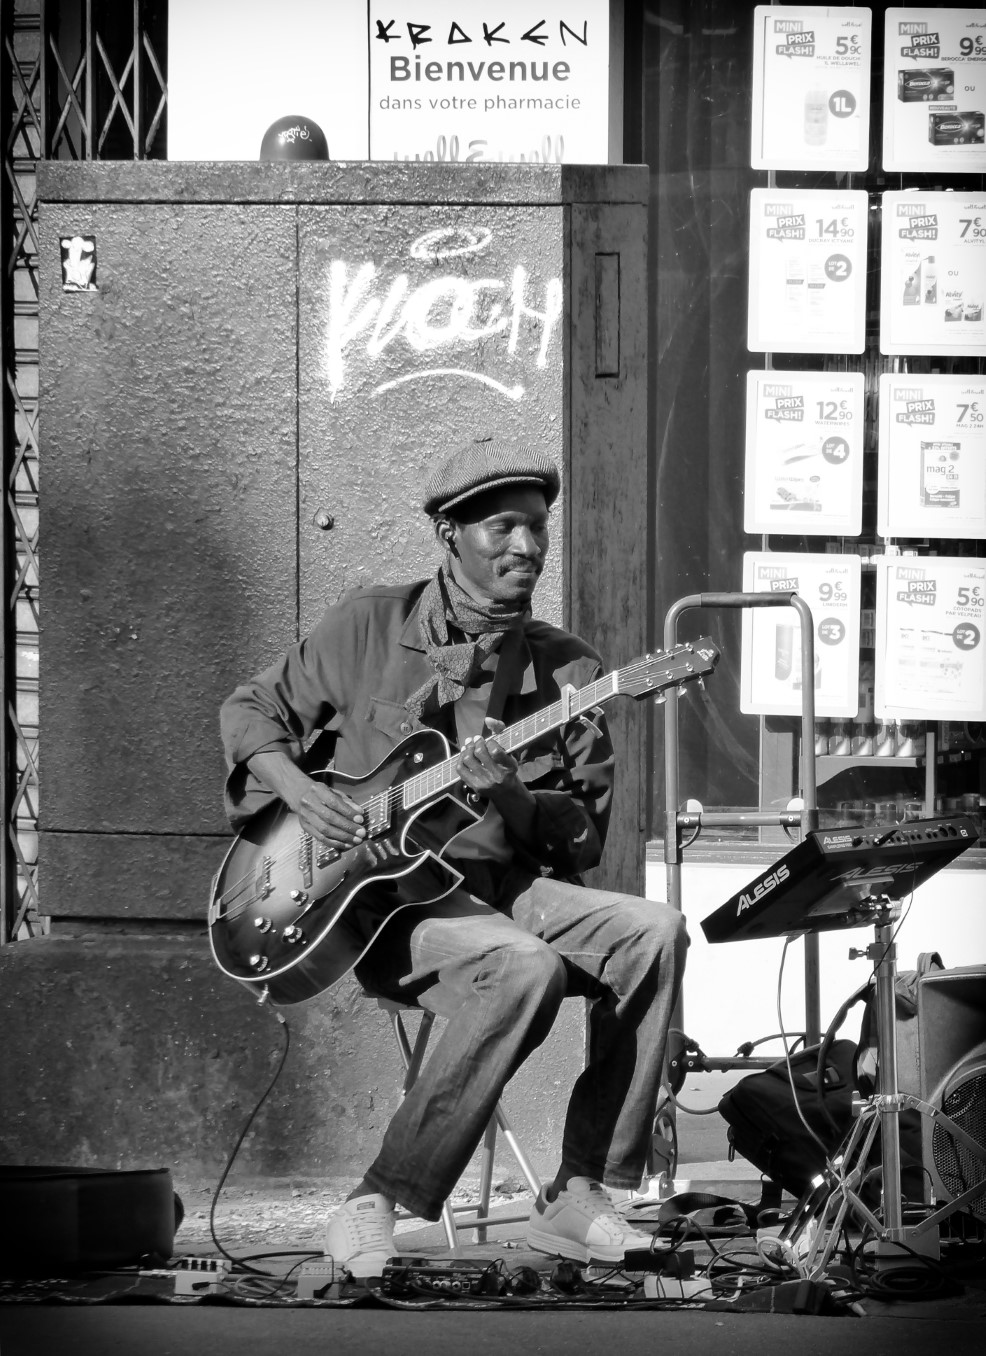 Black and white photo of a man playing guitar